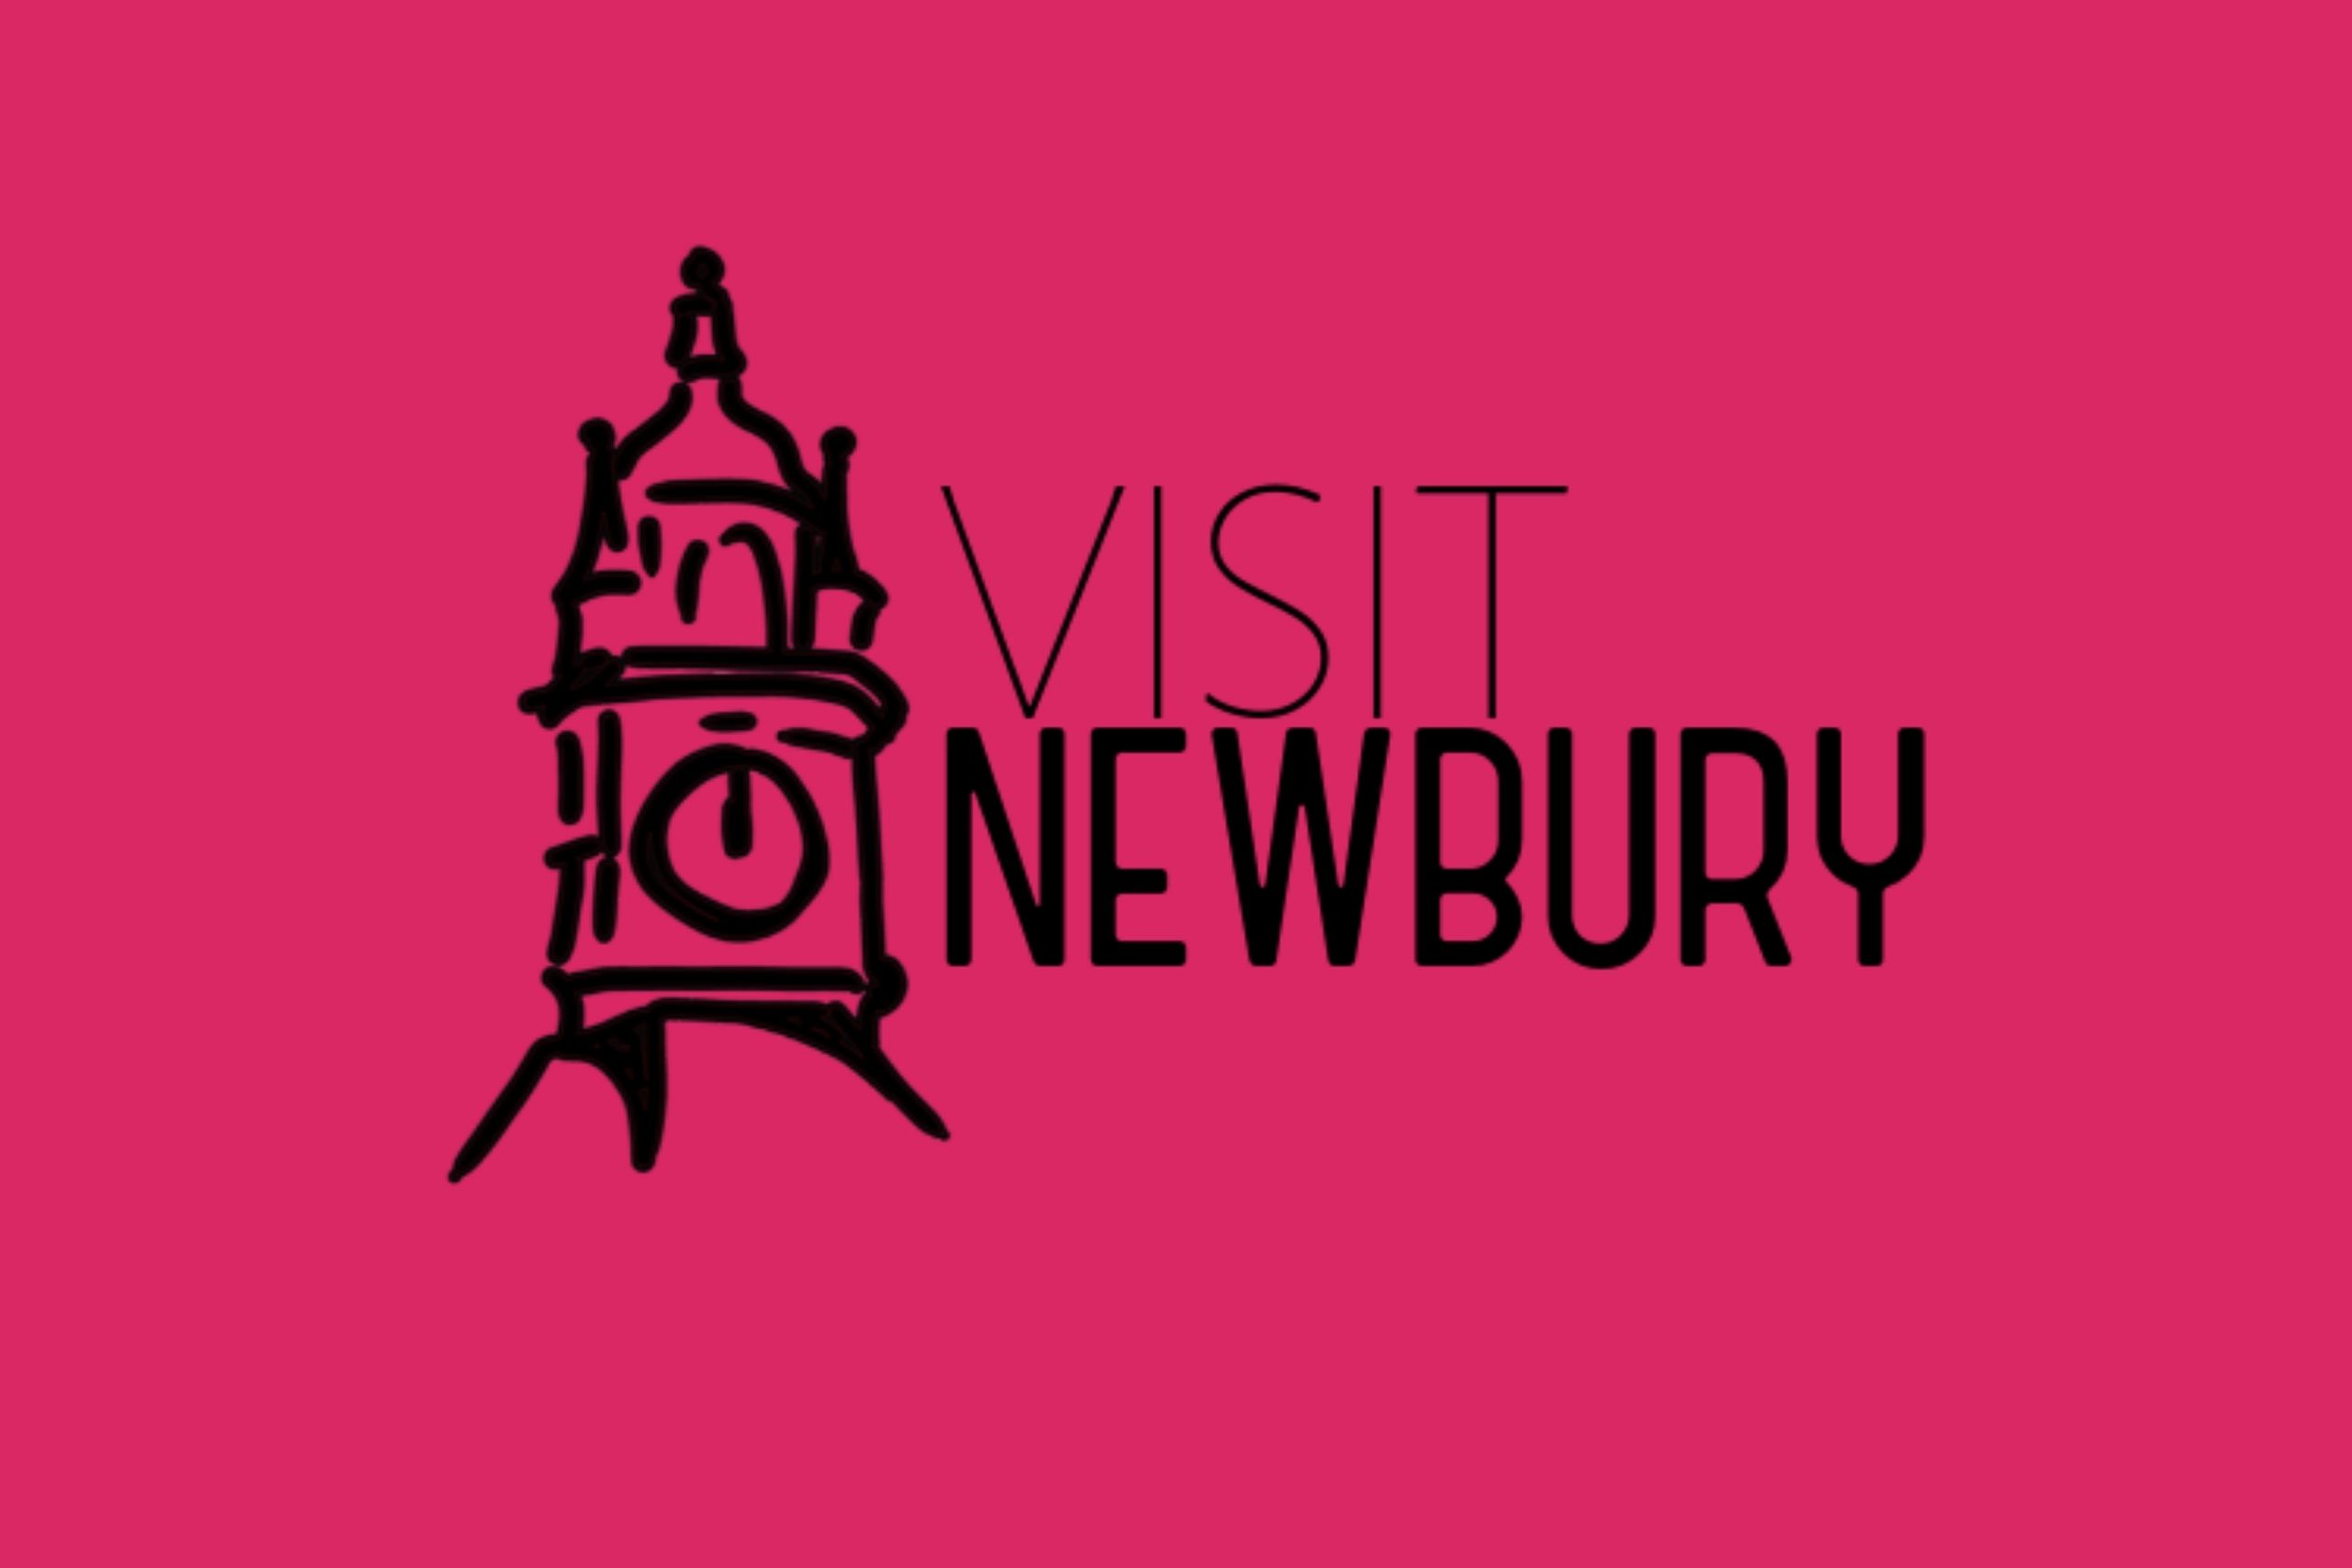 Visit Newbury Privacy Policy